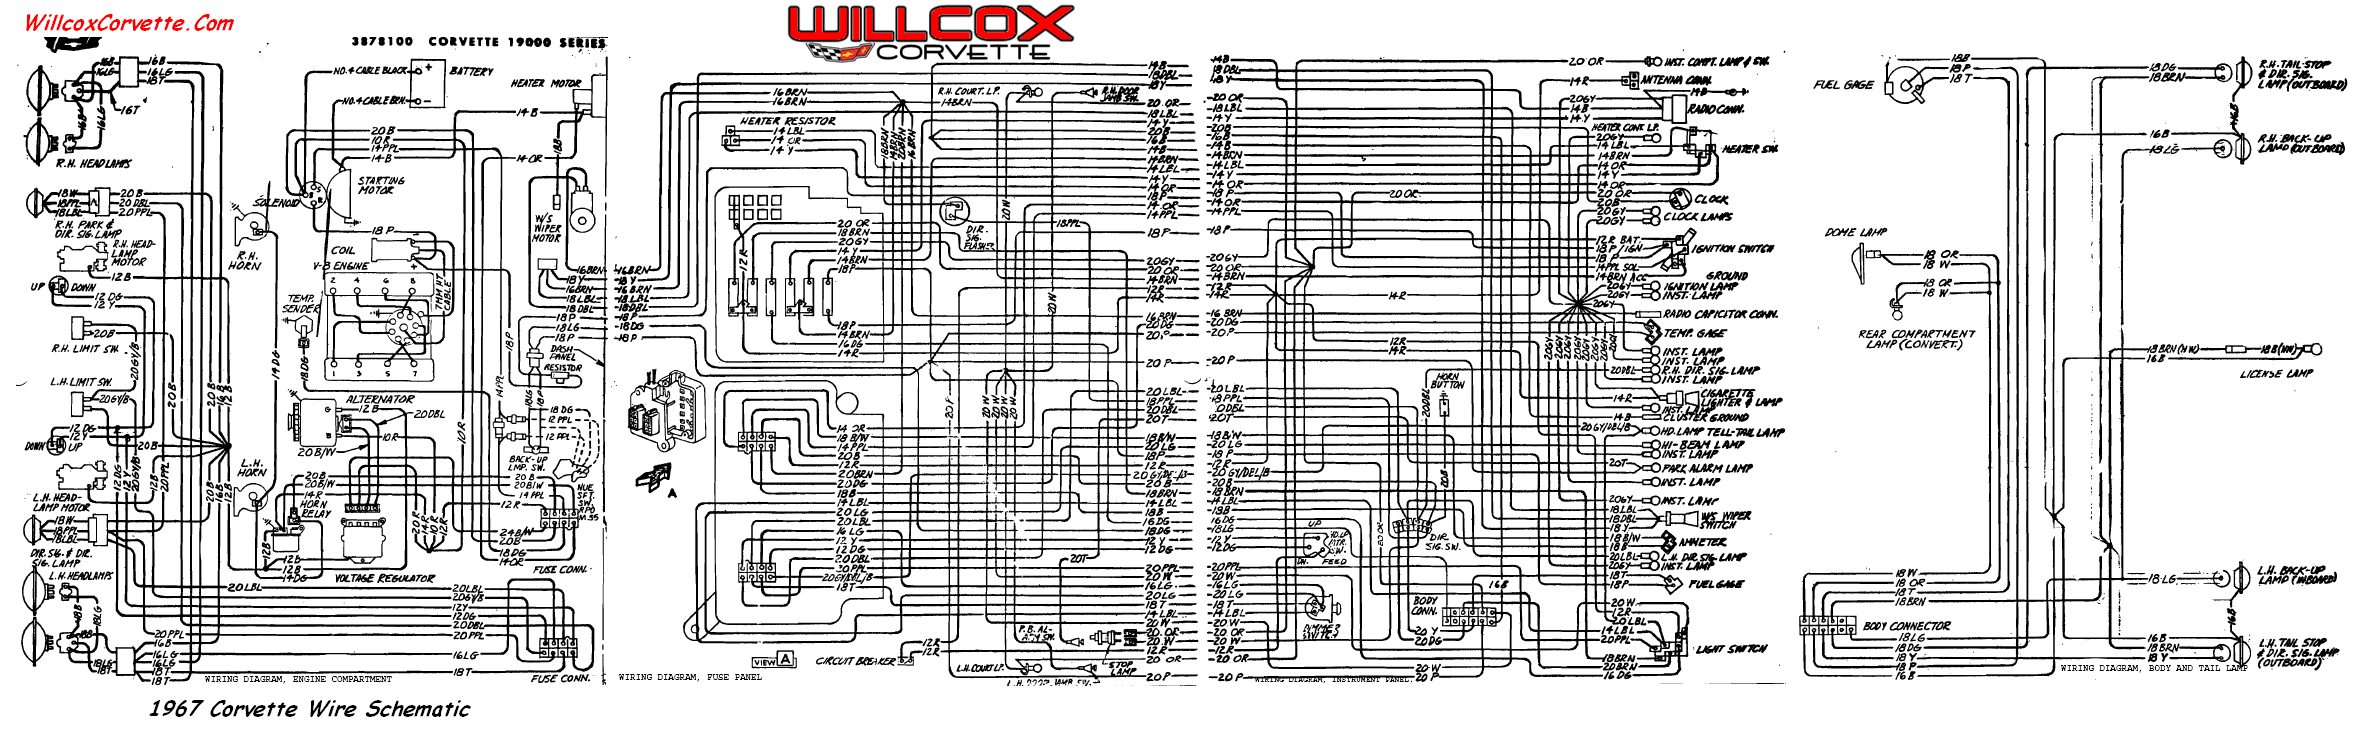 67 wire schematic for tracing wires 1967 corvette wiring diagram (tracer schematic) willcox corvette 2001 corvette wiring diagram at crackthecode.co